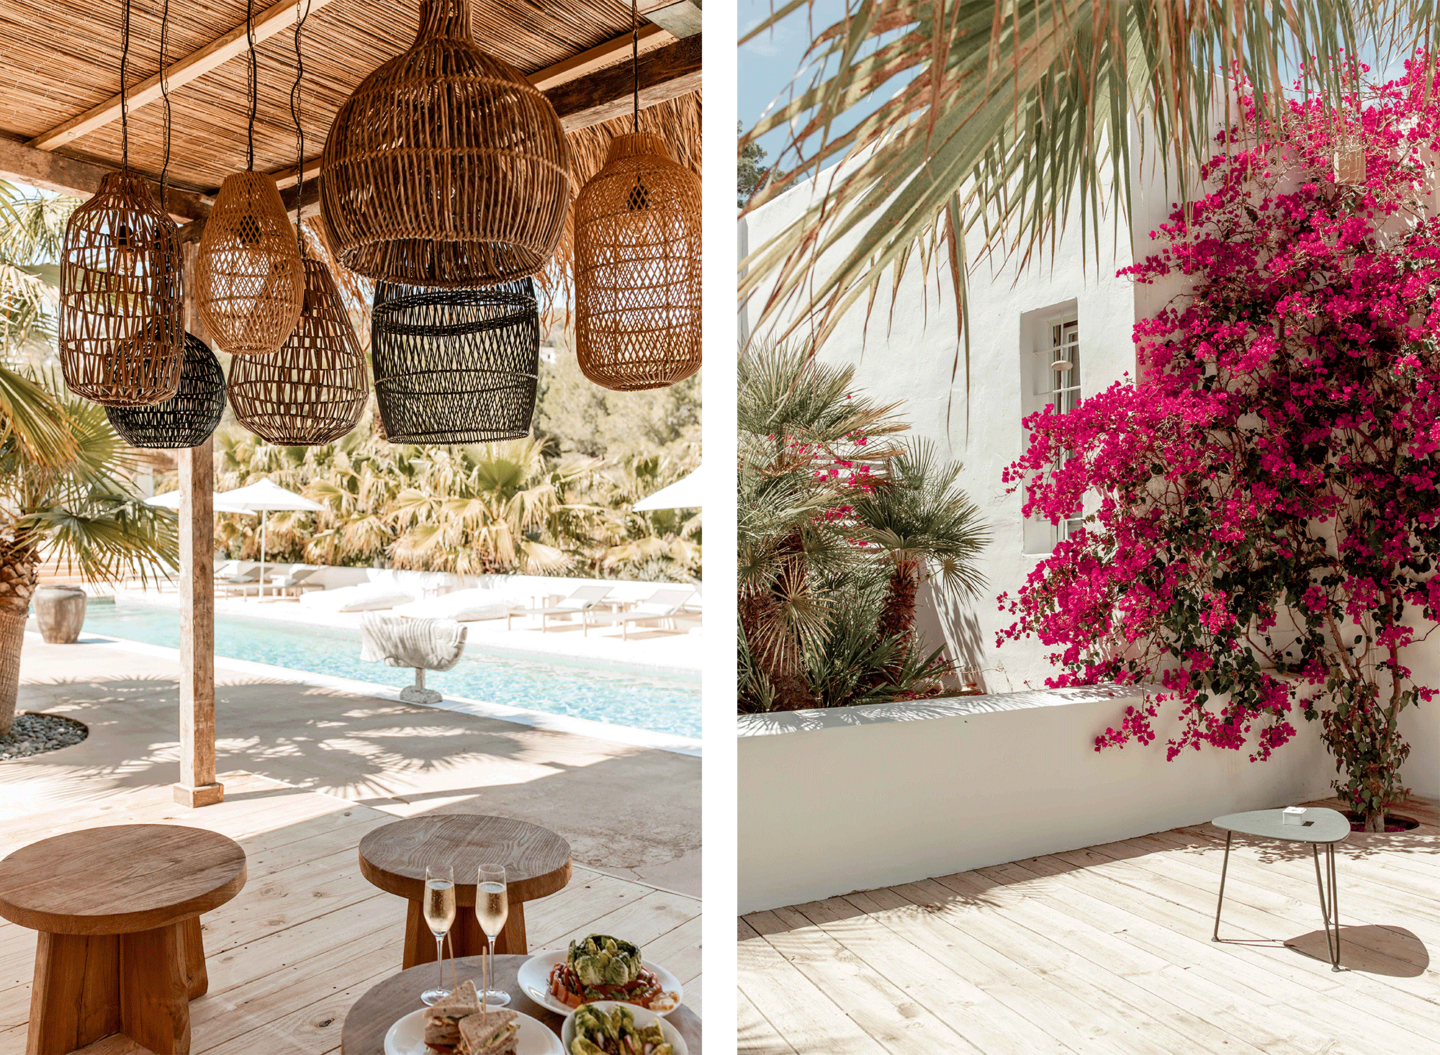 2-Top-things-to-do-in-Ibiza-Bucket-list--Instagram-Story-Template--kelseyinlondon-Kelsey-Heinrichs--What-to-do-in-Ibiza--Where-to-go-in-Ibiza-top-places-in-Ibiza-pure-house-ibiza